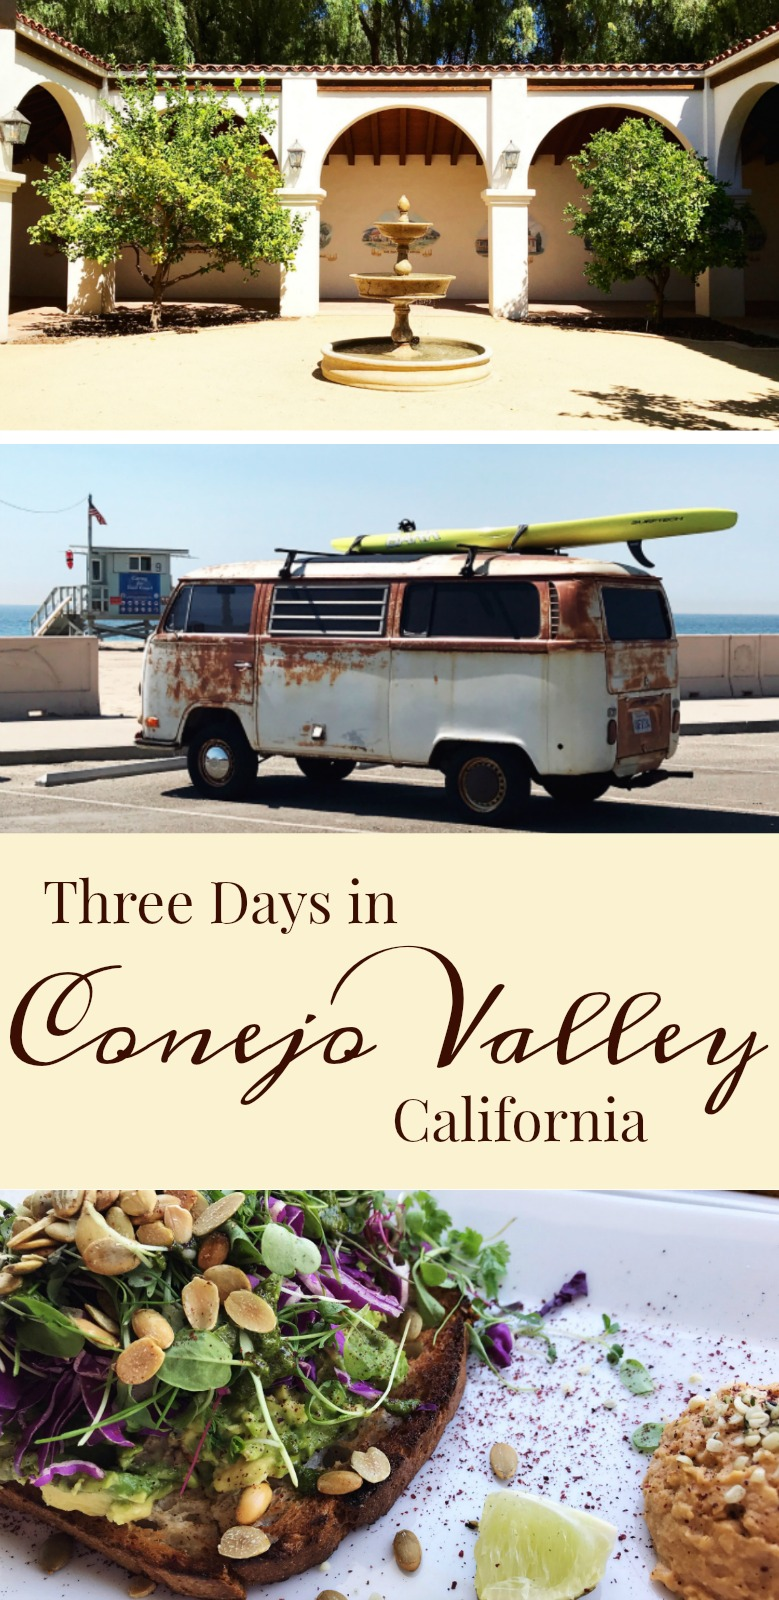 Three Days in Conejo Valley #ad #visitconejovalley #travel #reaganlibrary #zumabeach #homewoodsuites - Simple Sojourns